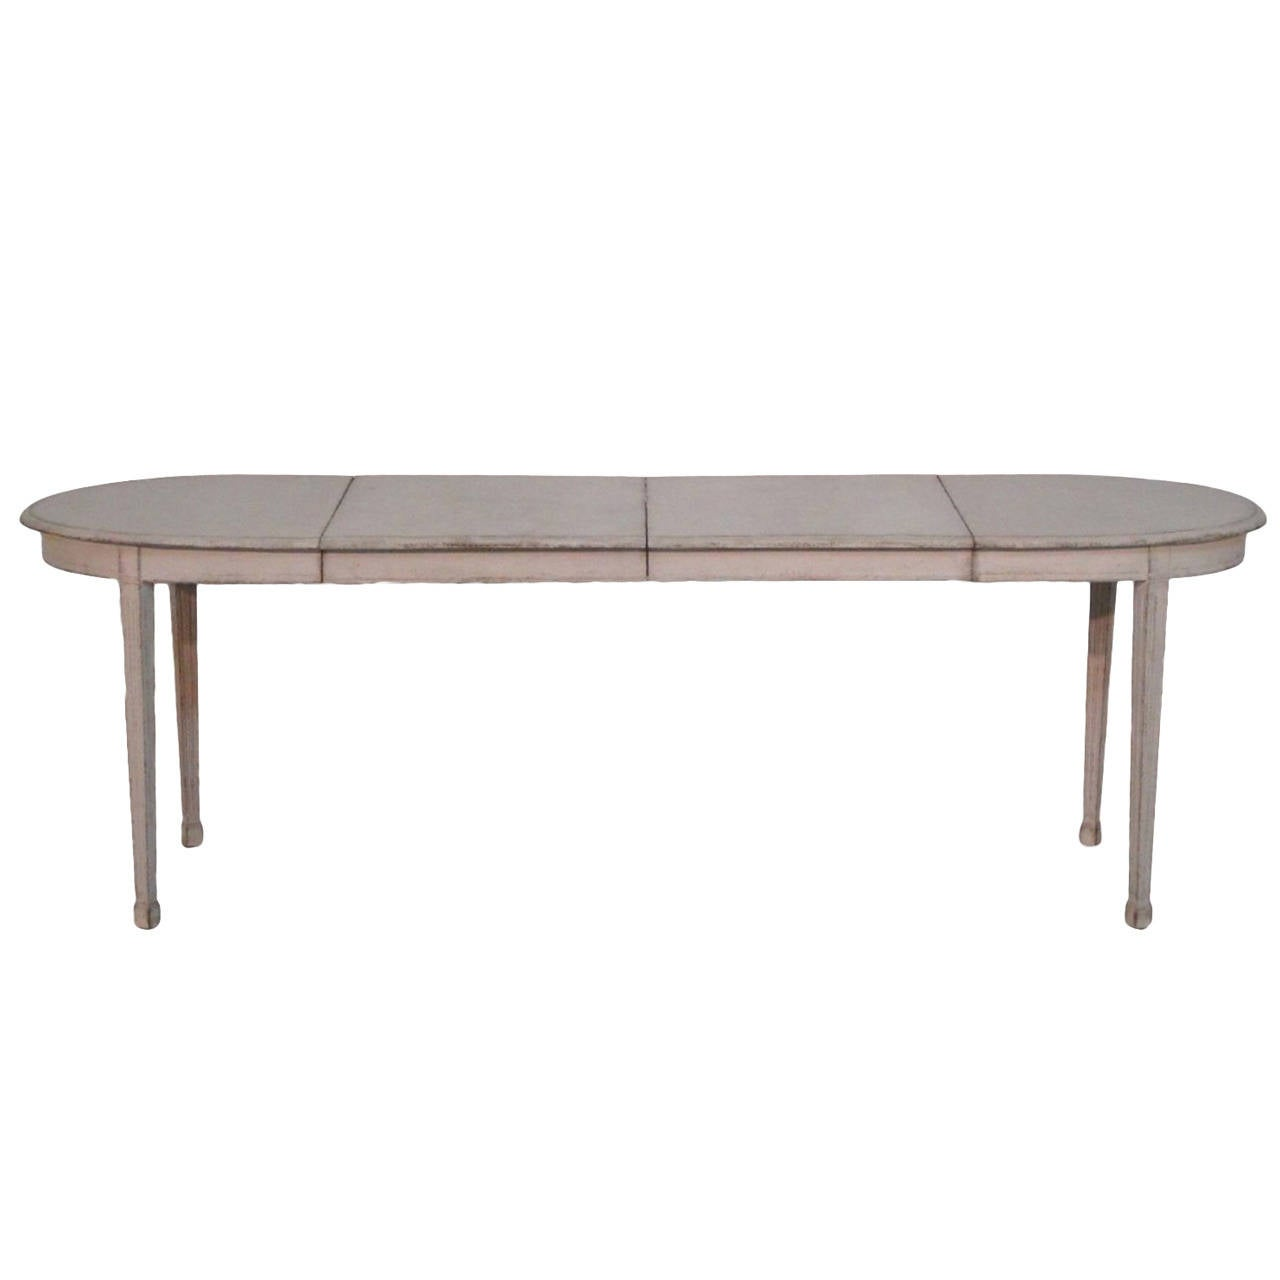 Swedish painted dining table in the gustavian style at 1stdibs for Painted dining table